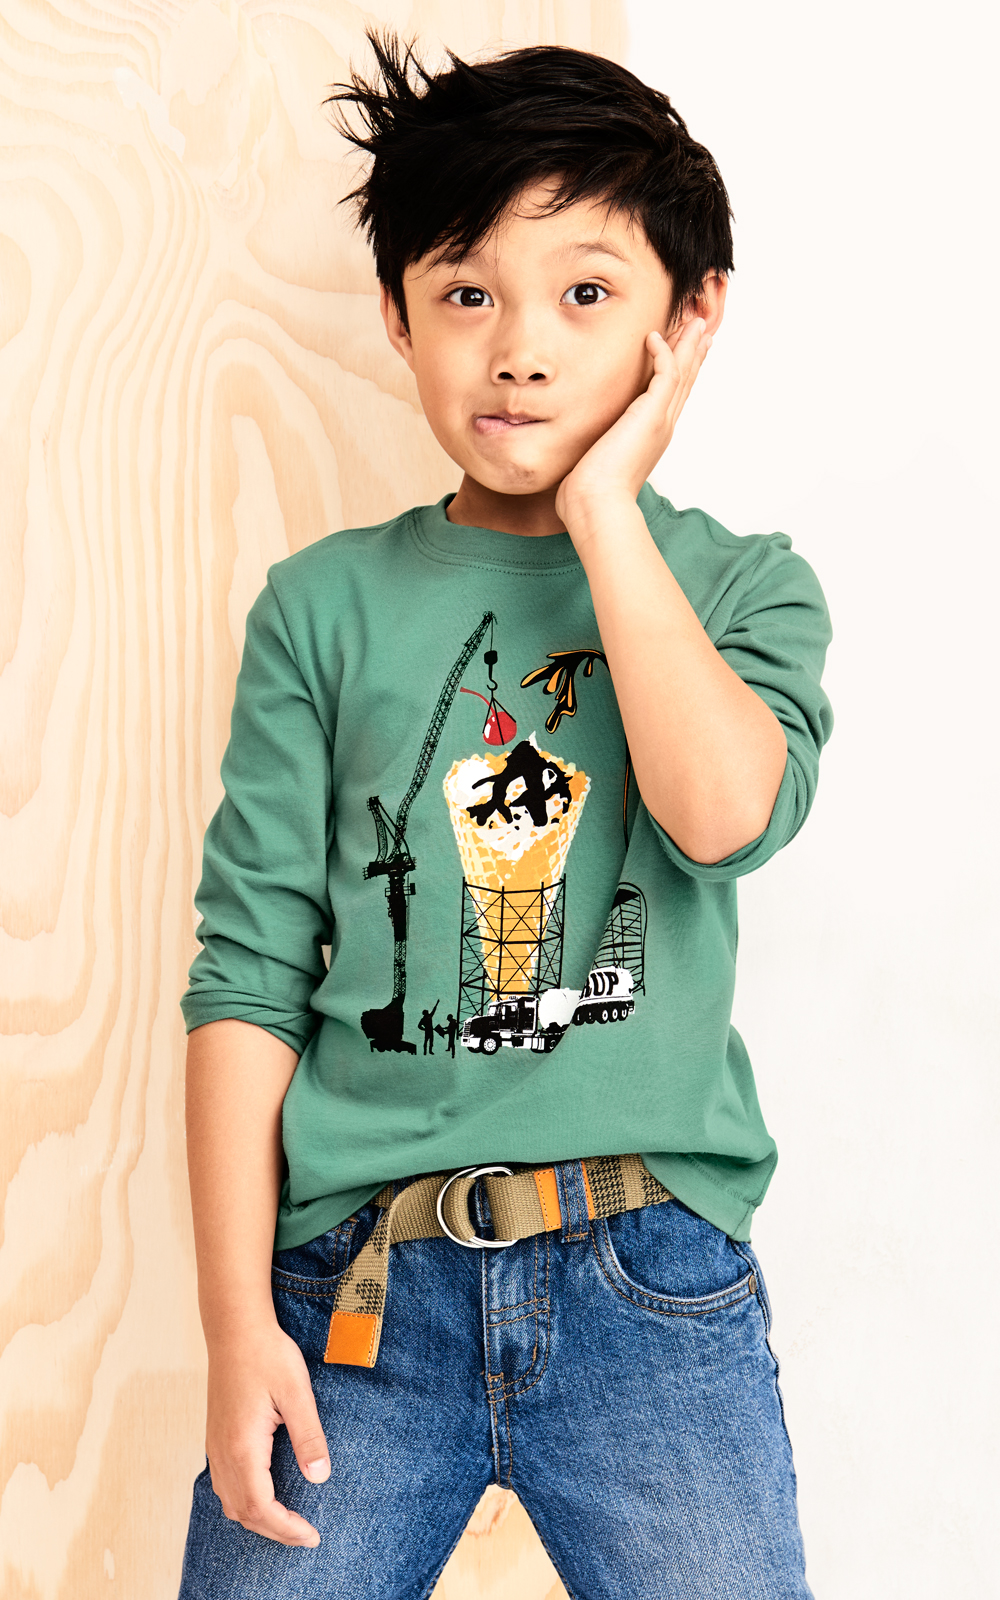 Kids Graphic Tees - Hanna Andersson